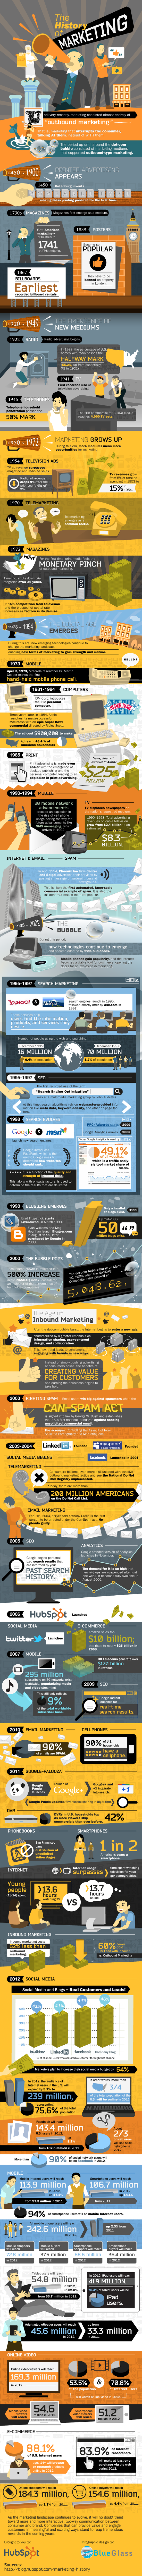 The History of Marketing via hubspot.com